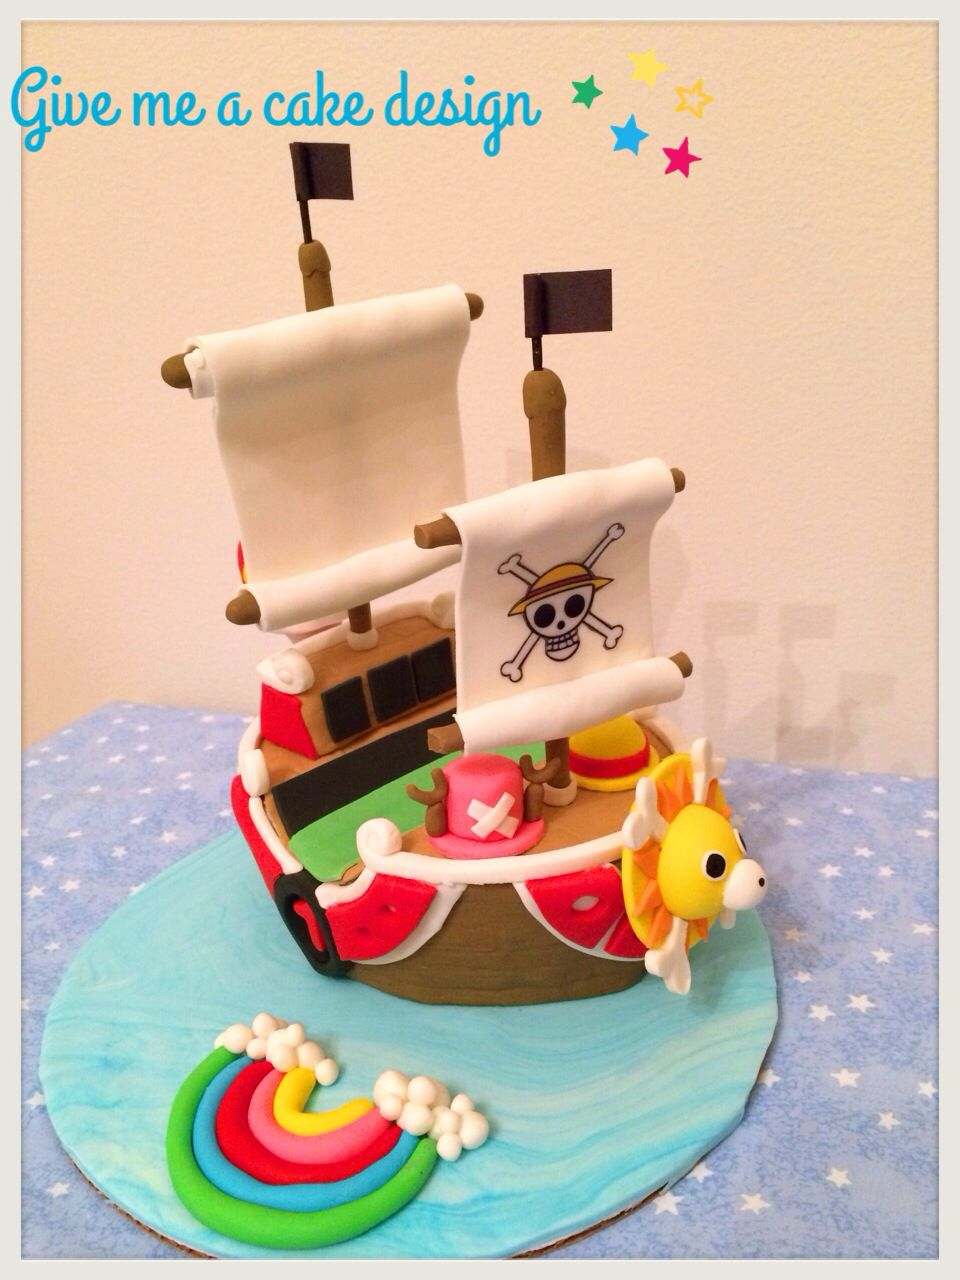 One Piece Boat Cake From Give Me A Customized Design Studio In Edison New Jersey